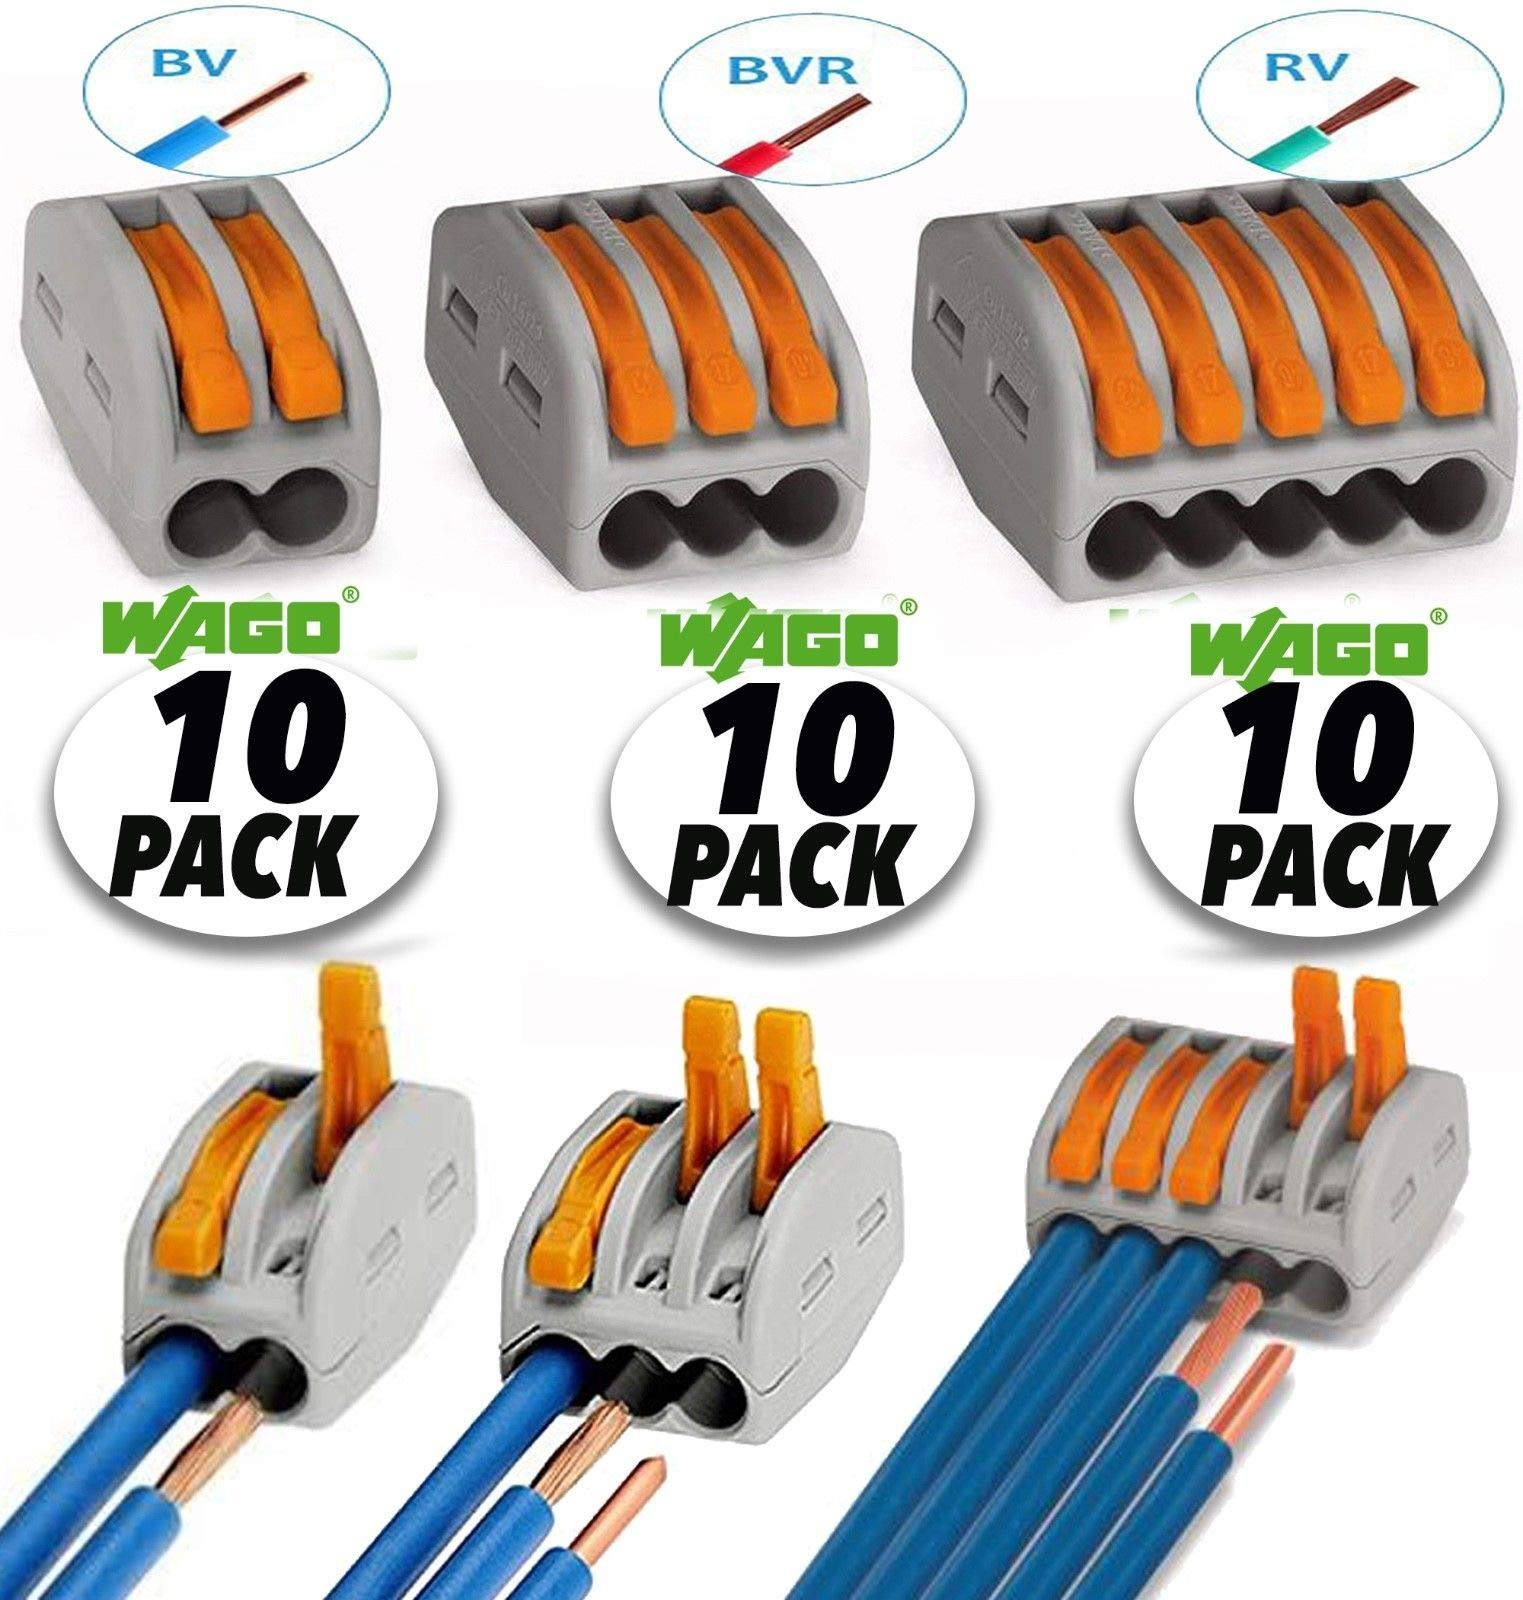 Wago 2 Port (10) 3 Port (10) 5 Port (10) Lever-Nut Assortment Pack Conductor Compact Connector Terminal Block Wire Push Cable Connector 12-28 AWG, 32A